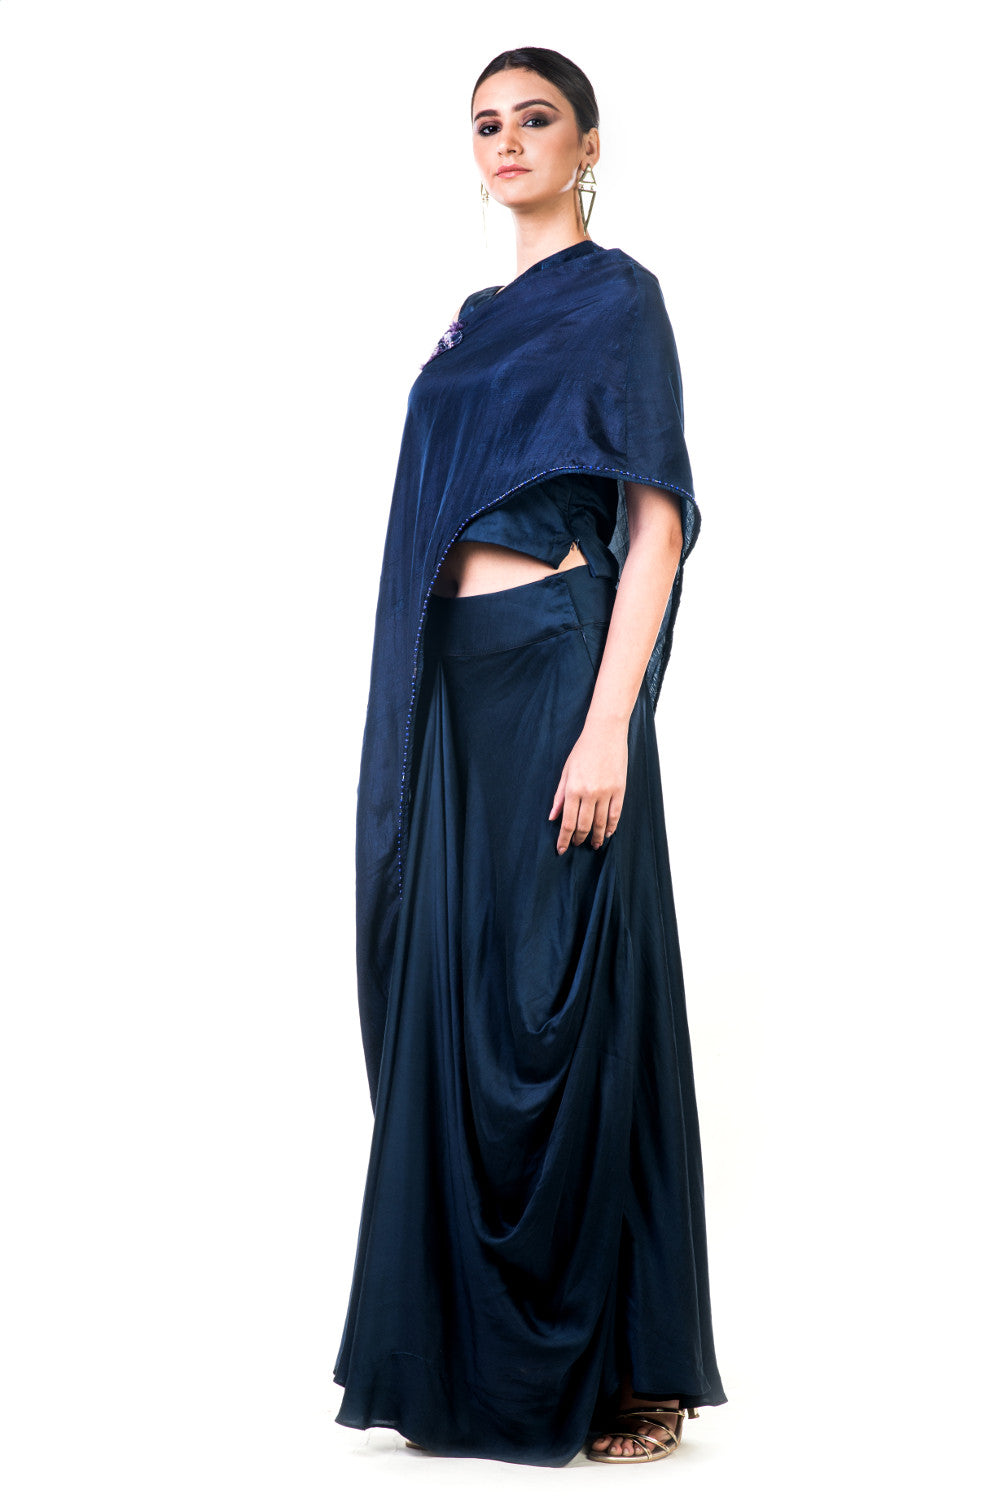 Anushree Agarwal. Midnight Blue Draped Gown With A Cape – Velvetry